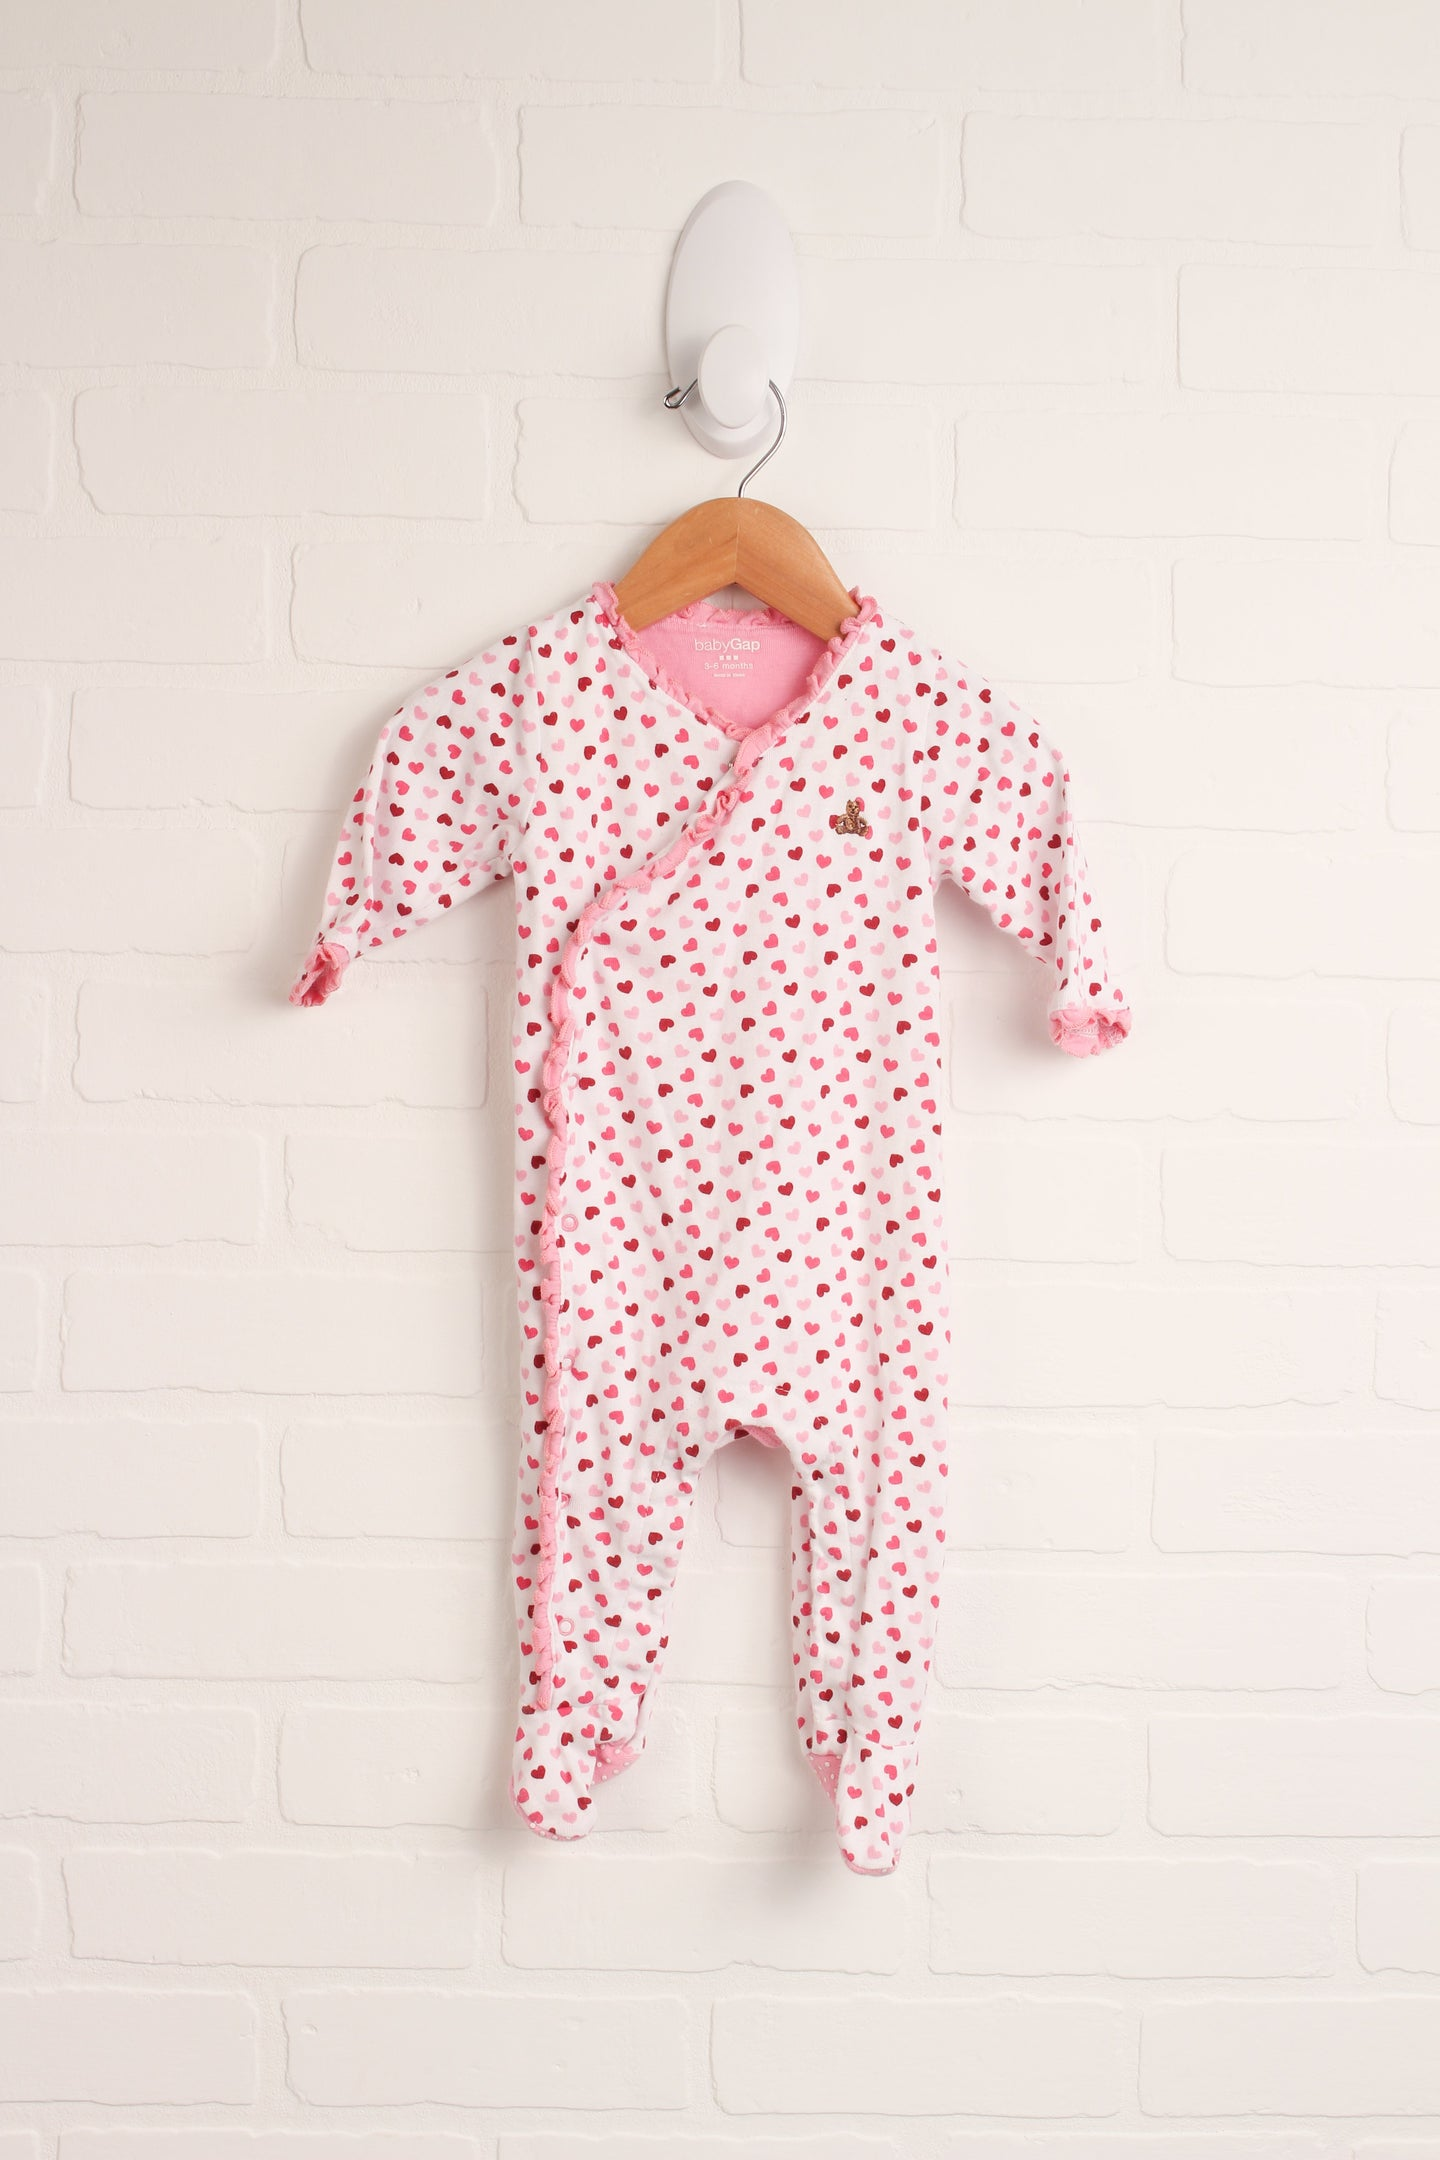 White + Pink Sleeper (Size 3-6M)